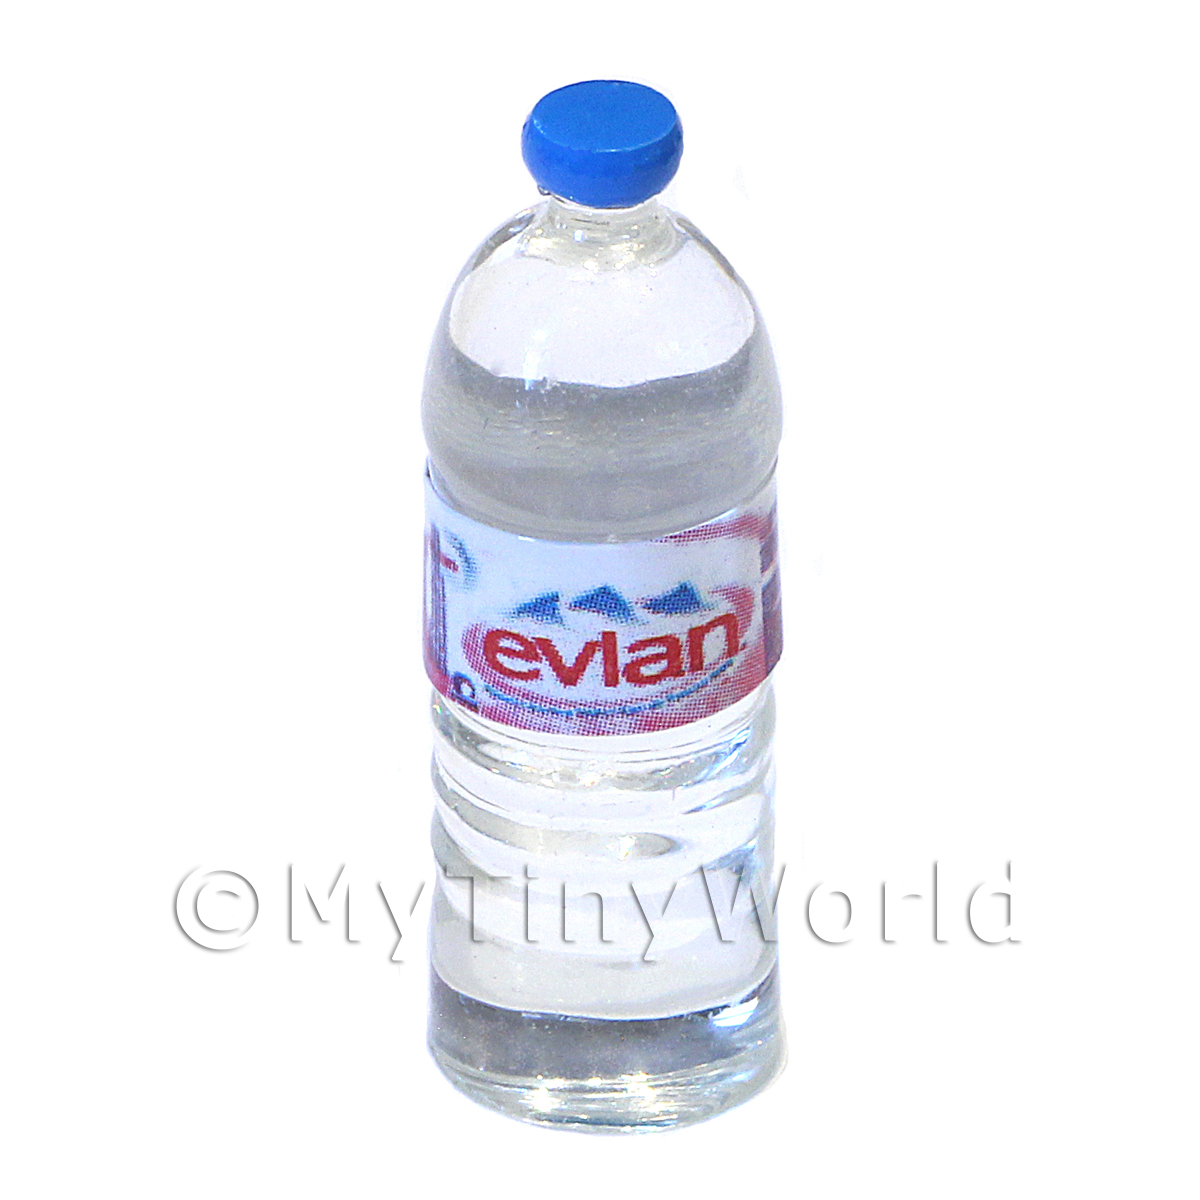 Dolls House Miniature Large Evian Brand Round Water Bottle